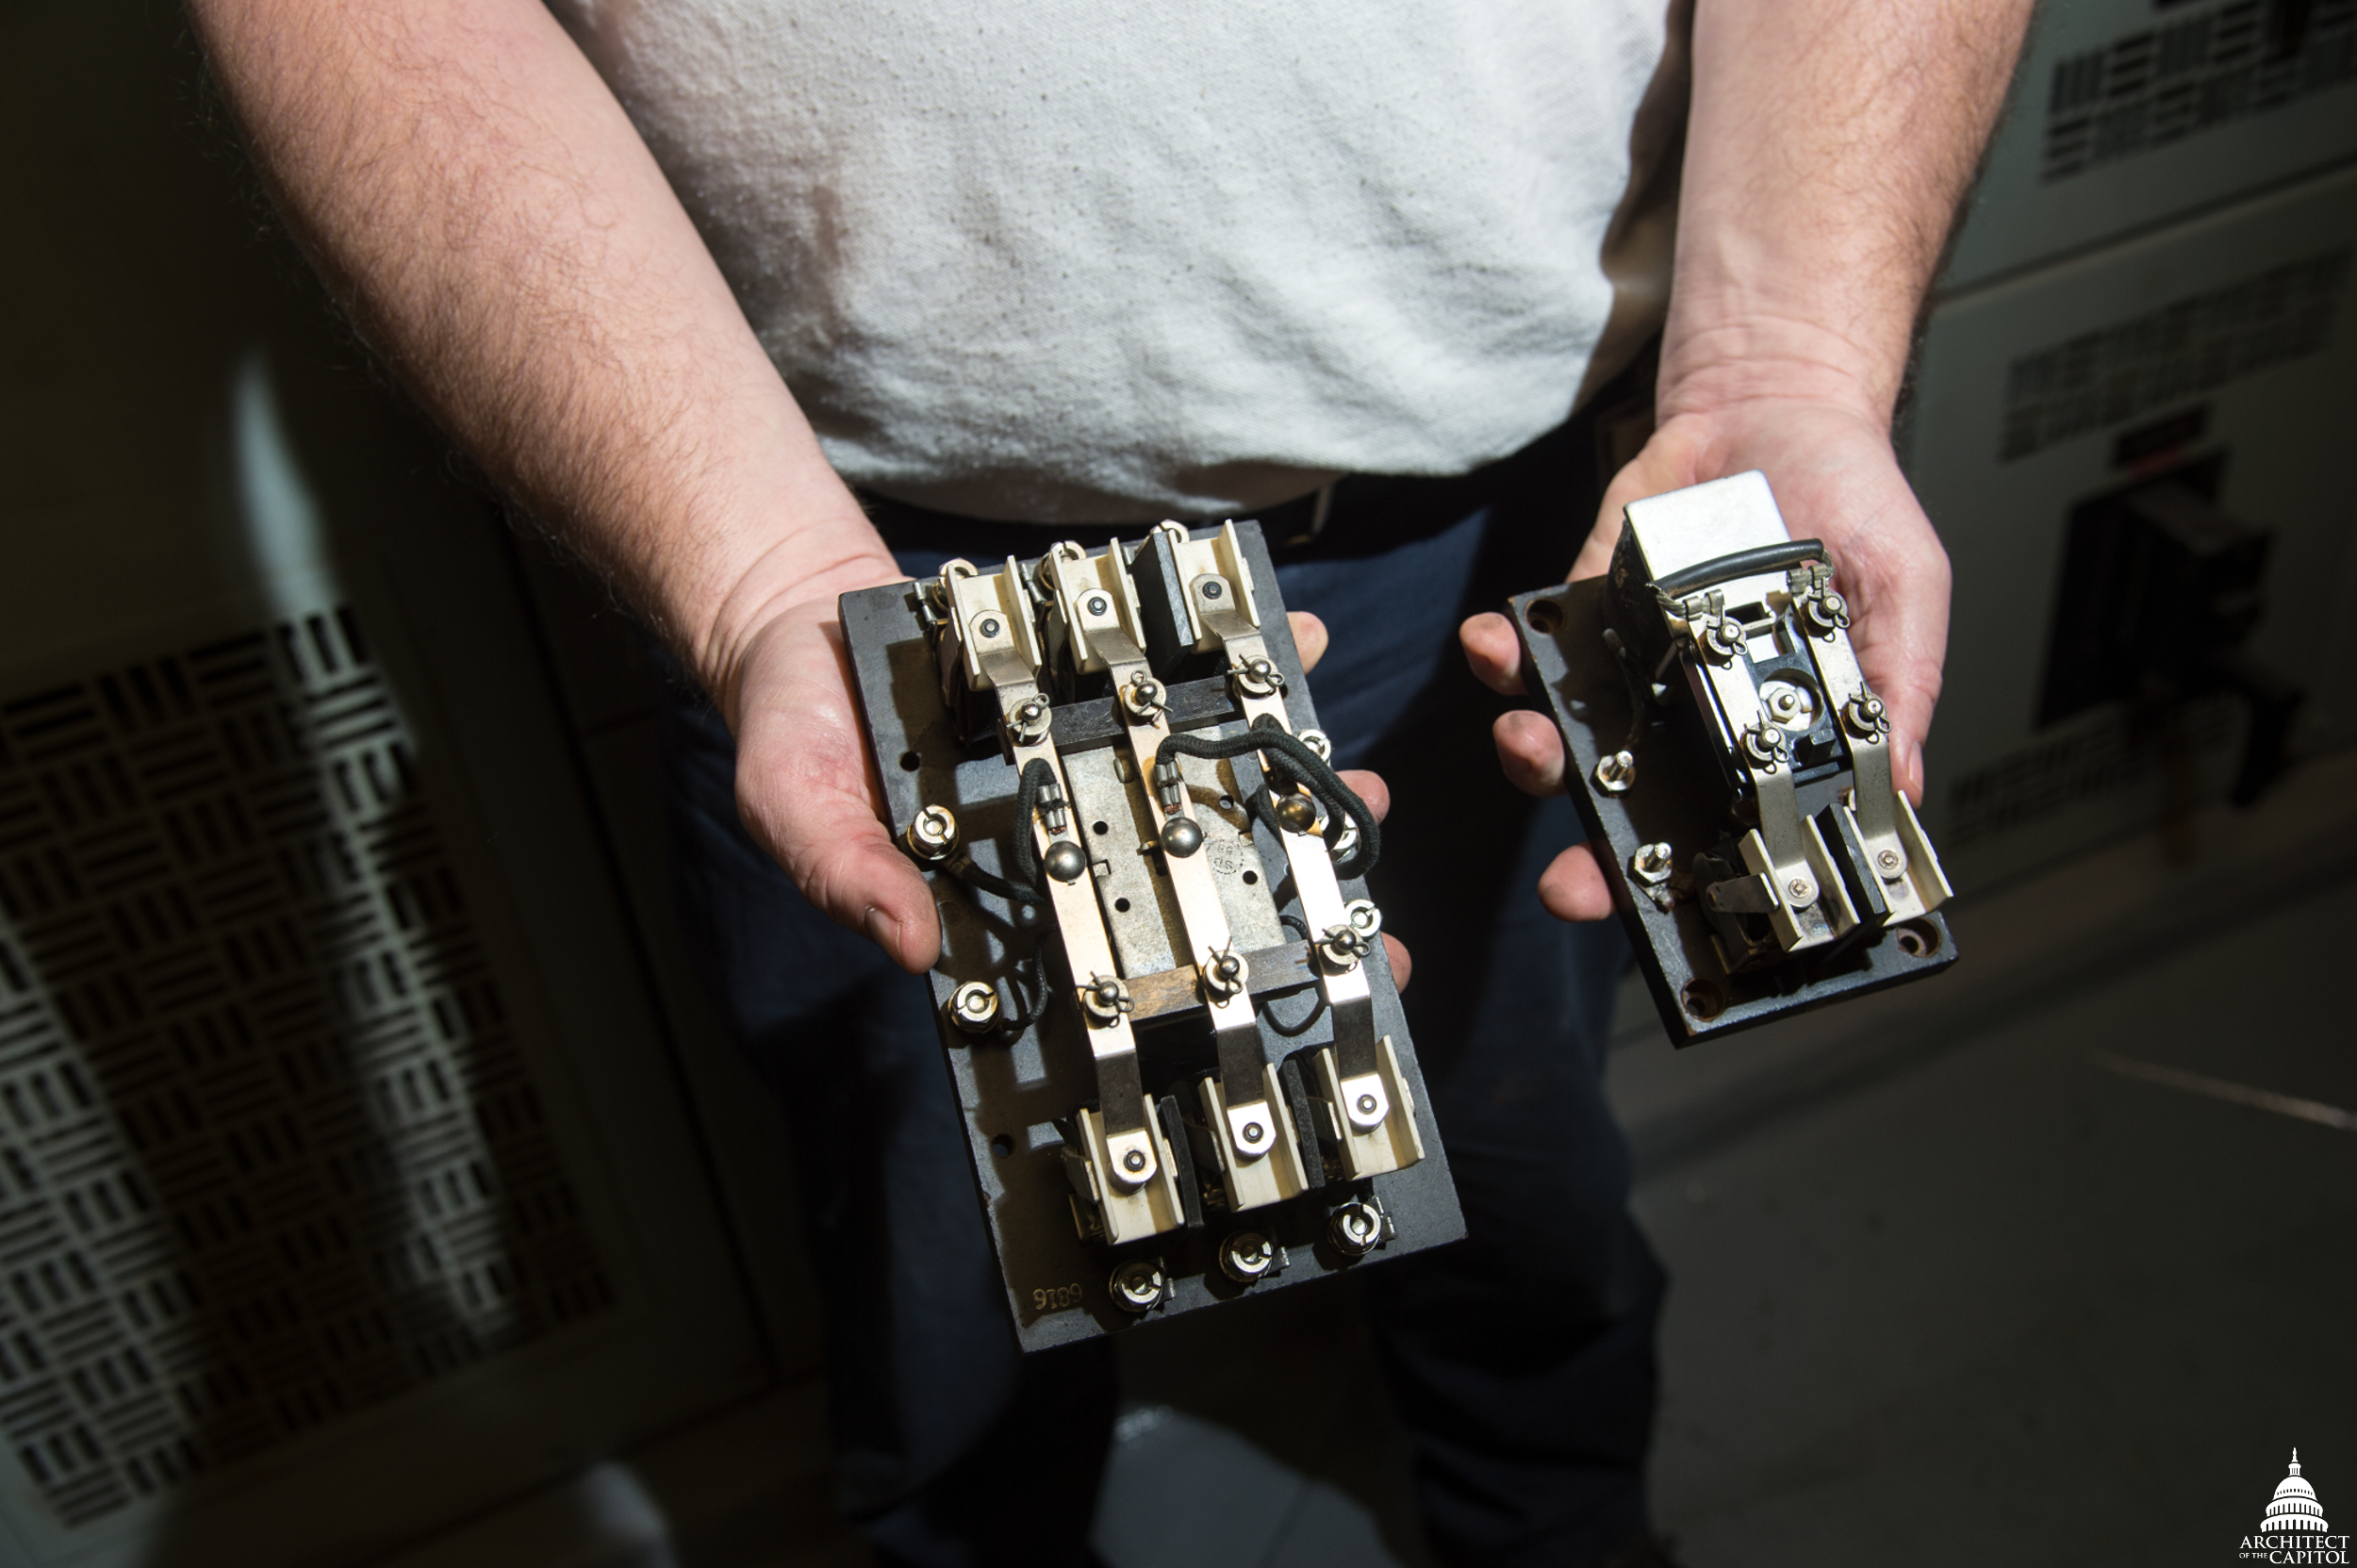 Two relay switches are used to open and close the doors on the Russell Building subway cars.